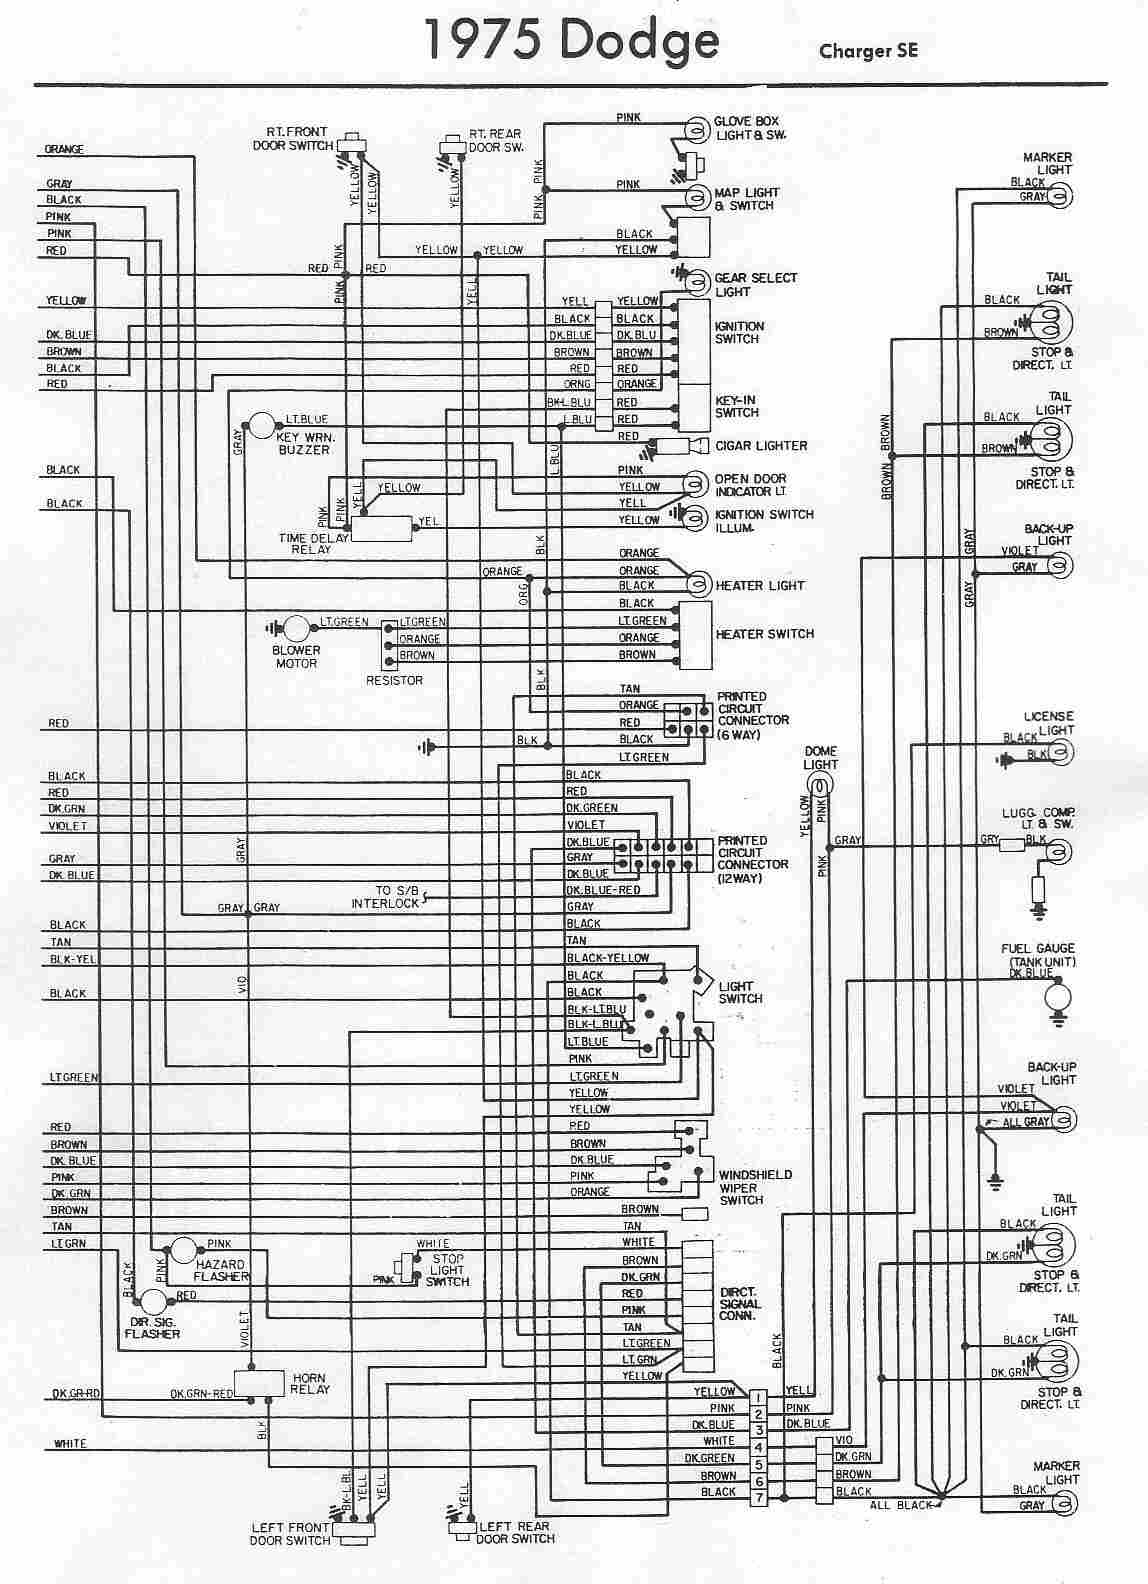 www automotive manuals net app download 1388032602 rh linxglobal co Dodge Nitro Fuse Box Diagram Dodge Nitro Parts Diagram